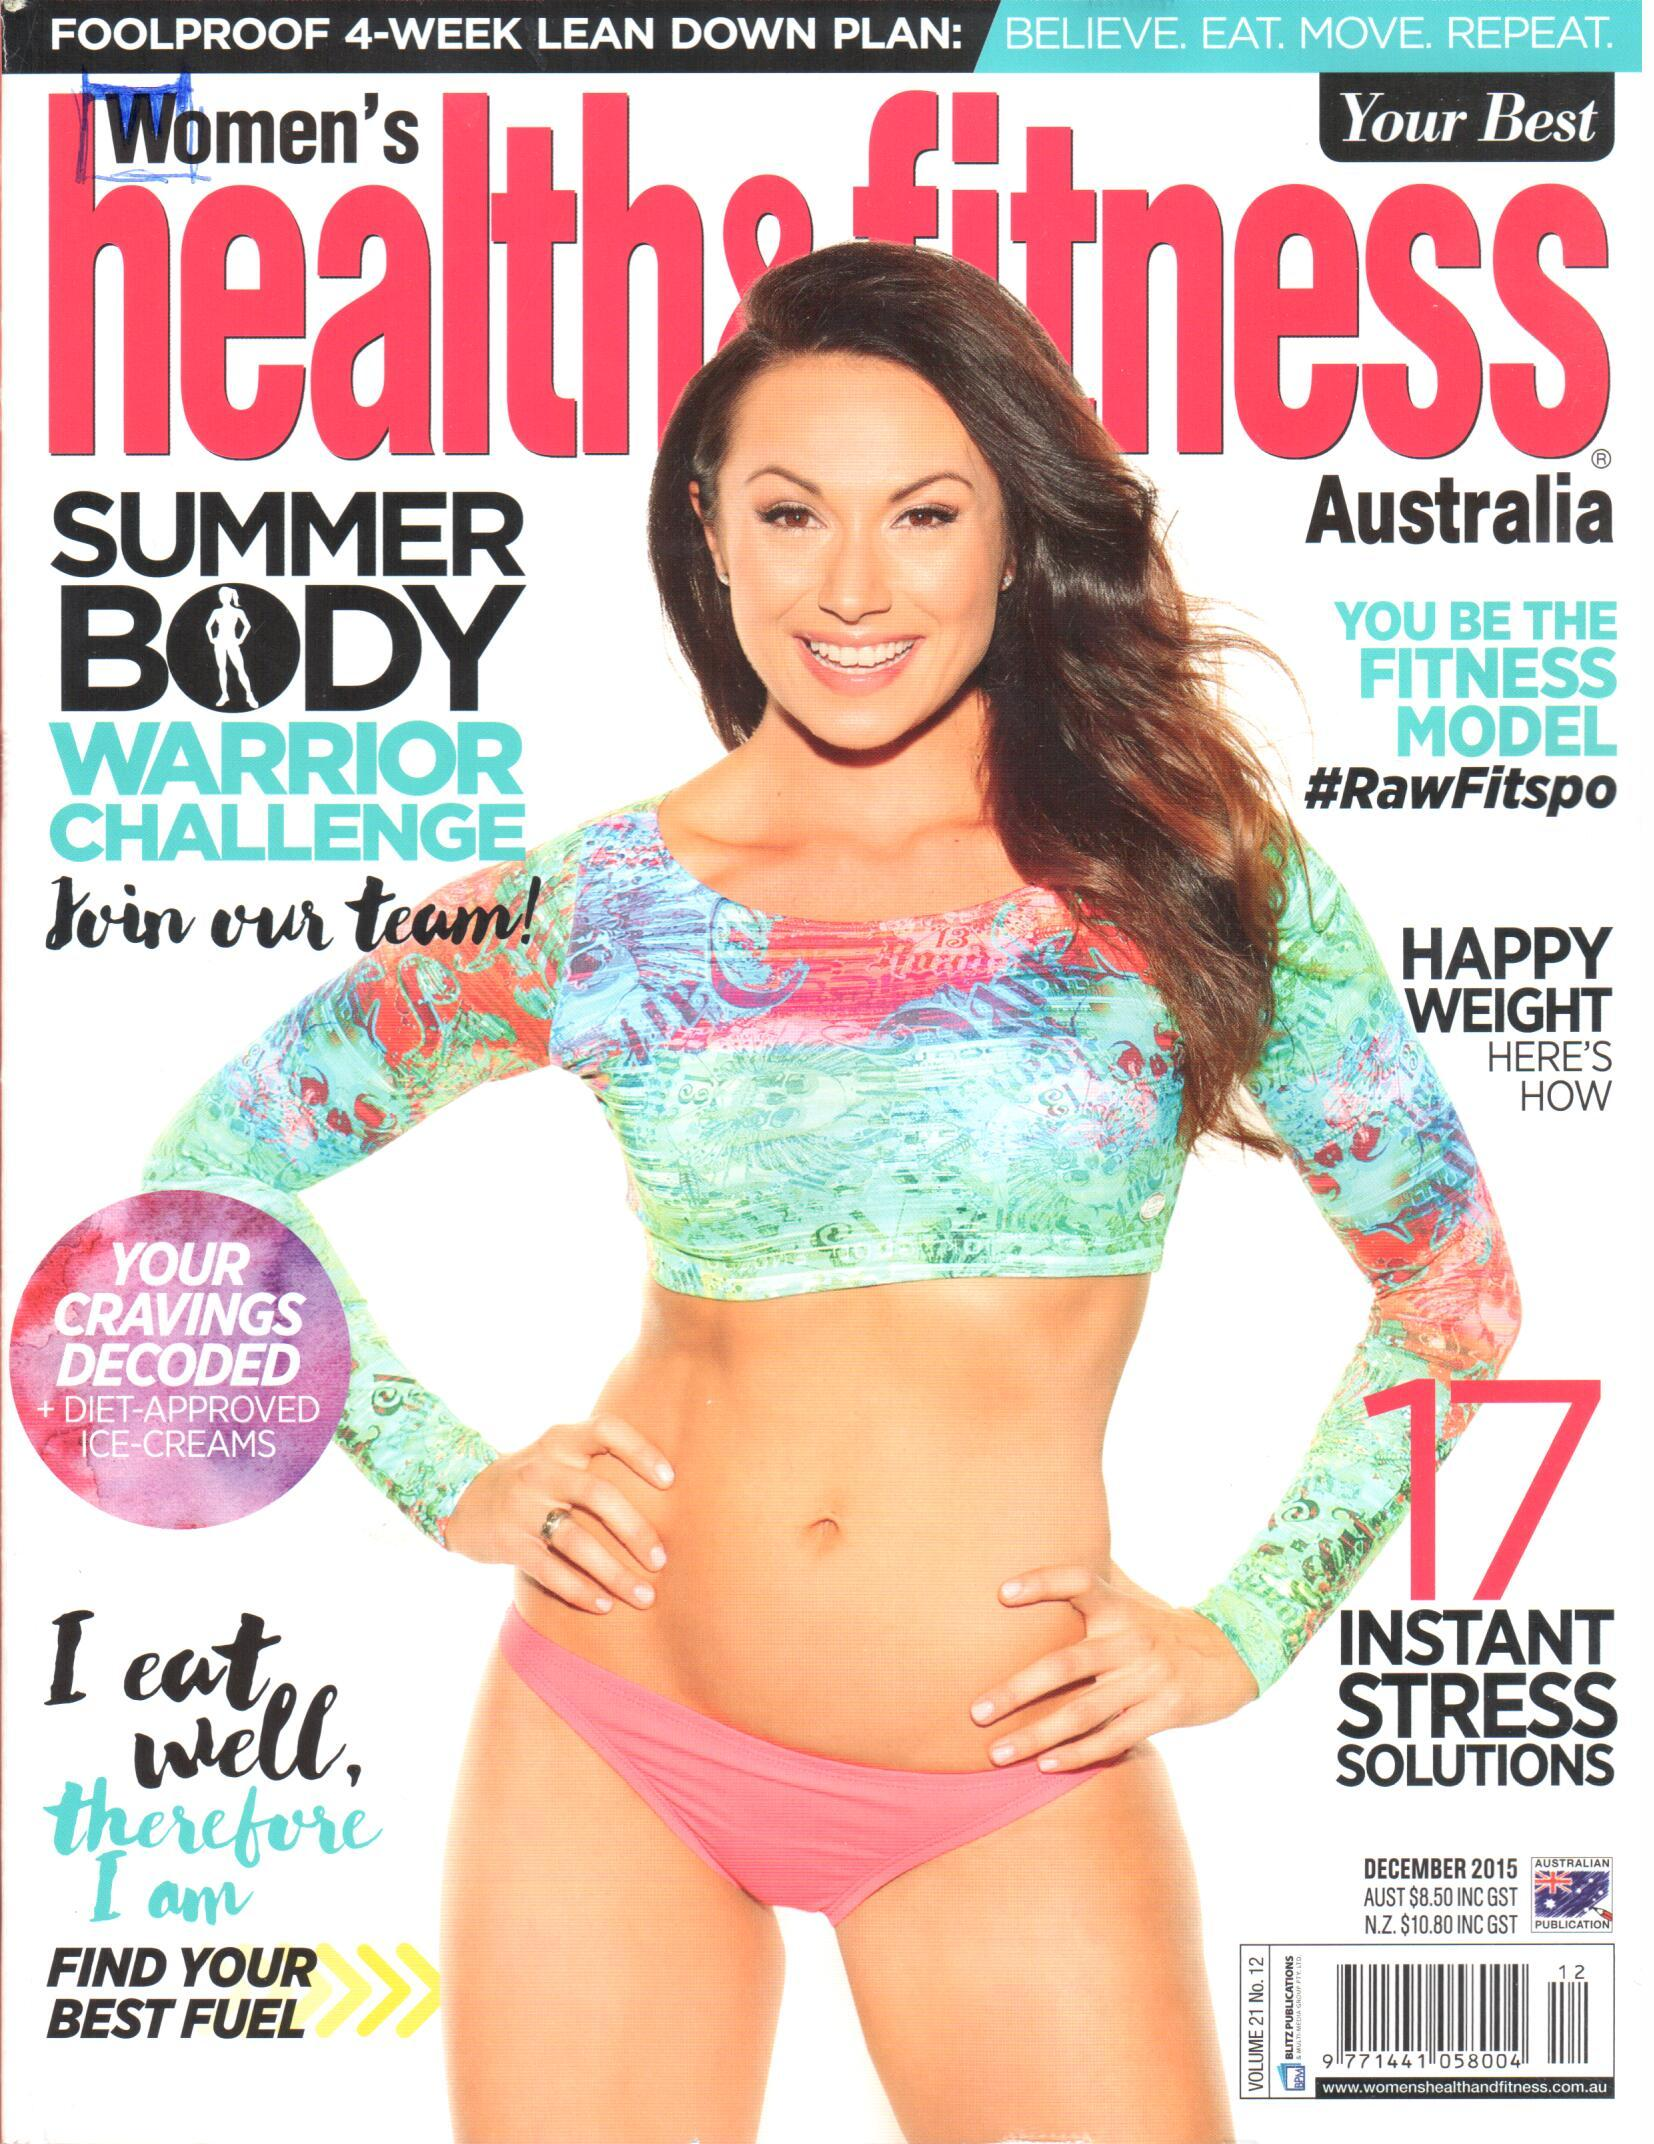 A Women's Health & Fitness Magazine Front Cover